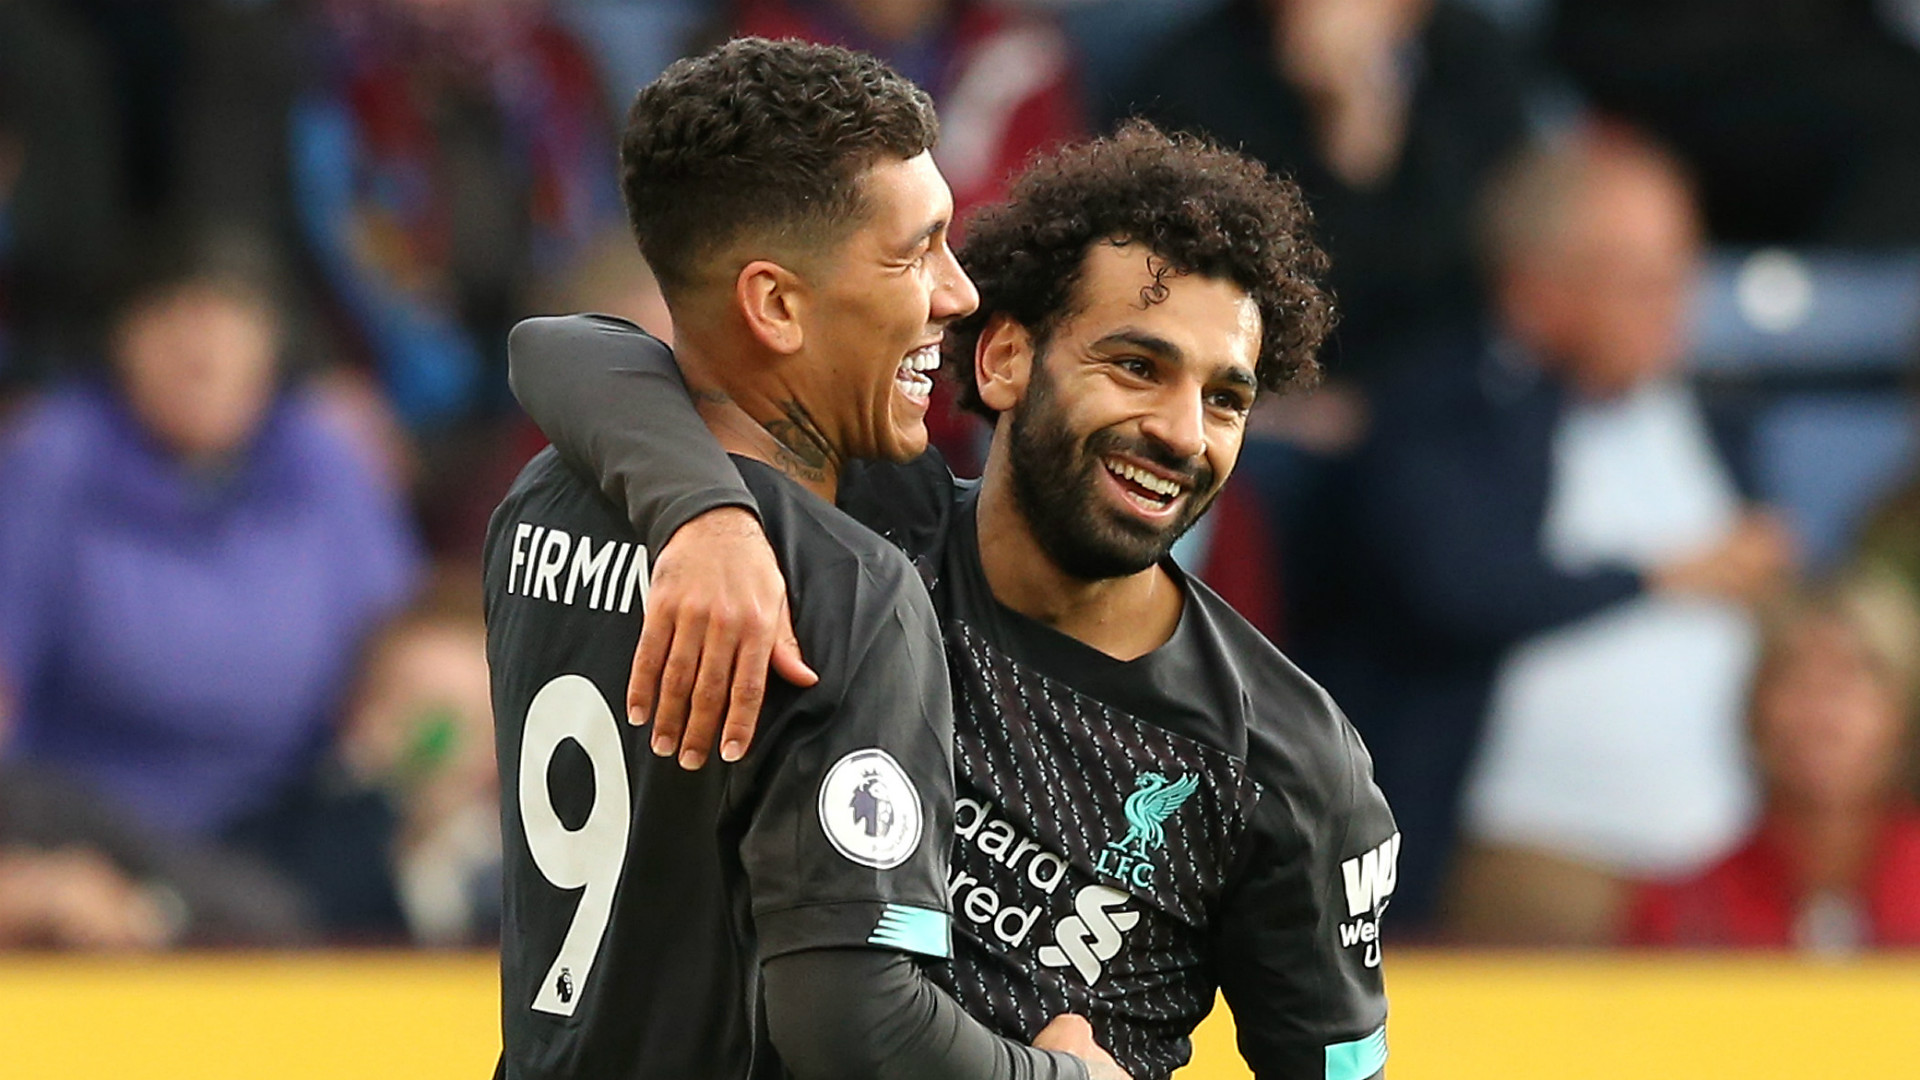 Firmino & Salah continue fruitful partnership despite Liverpool's defeat to Manchester United